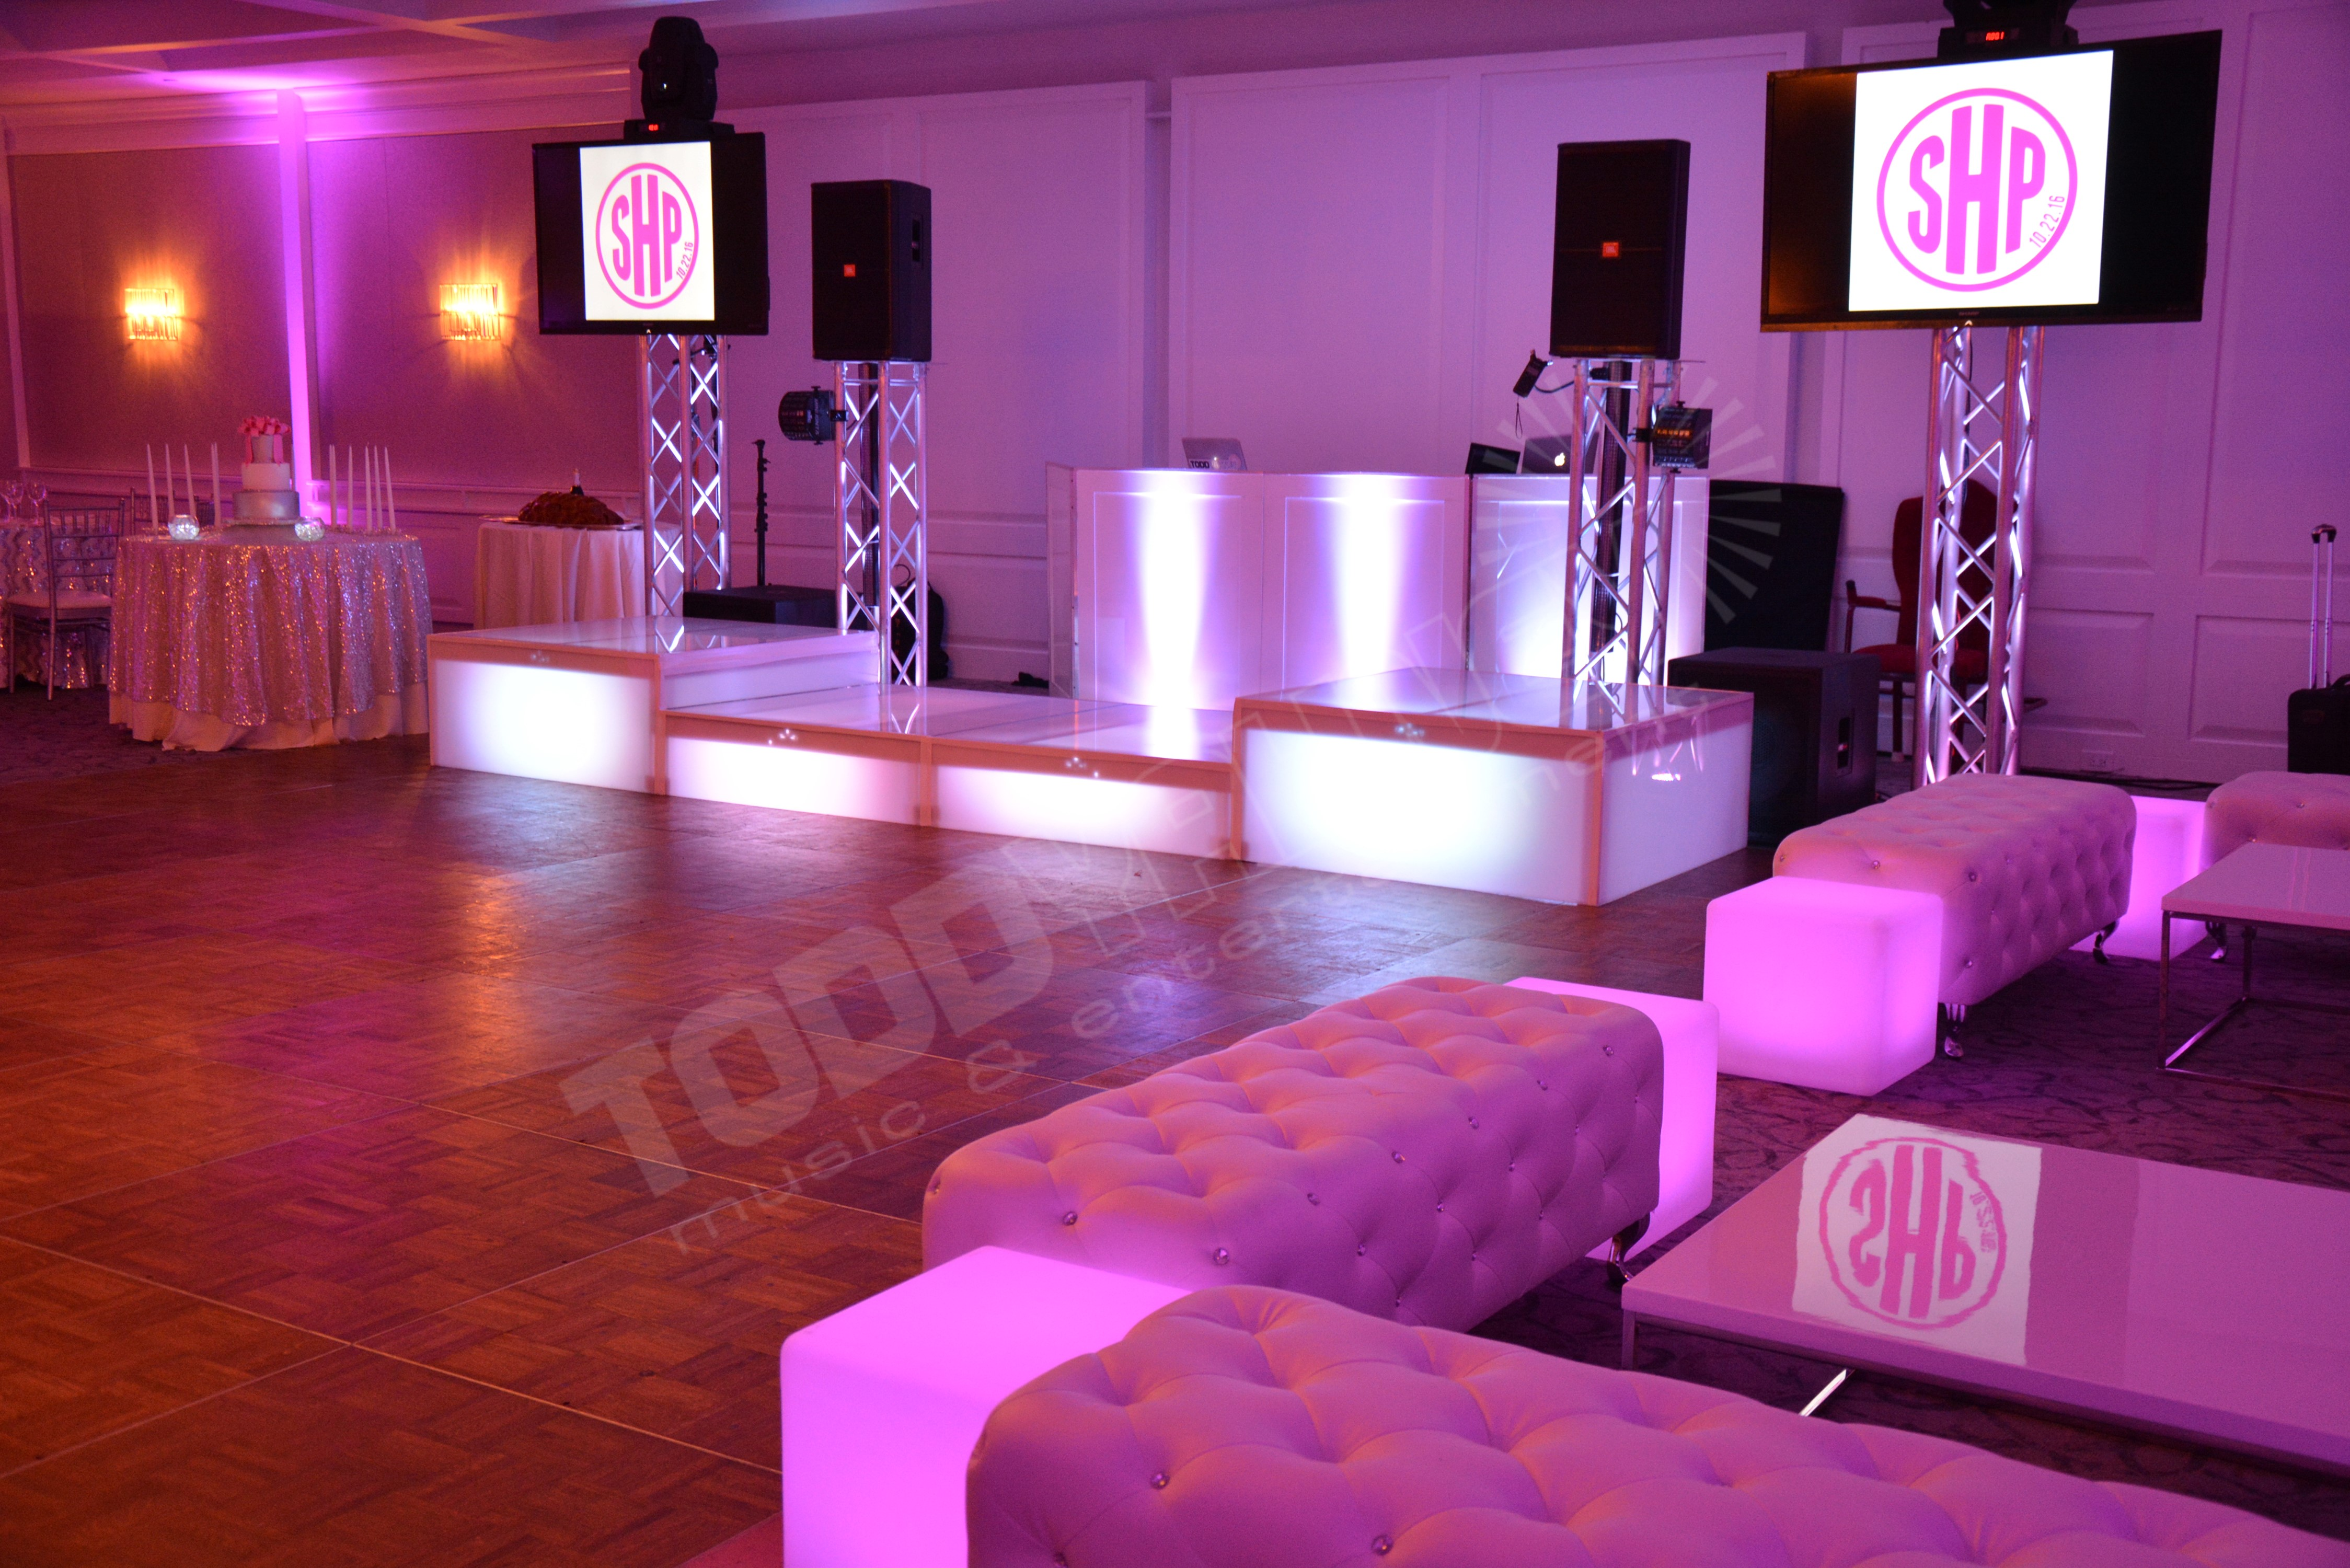 Todd Yahney Entertainment Lounge Decor - Todd Yahney Entertainment